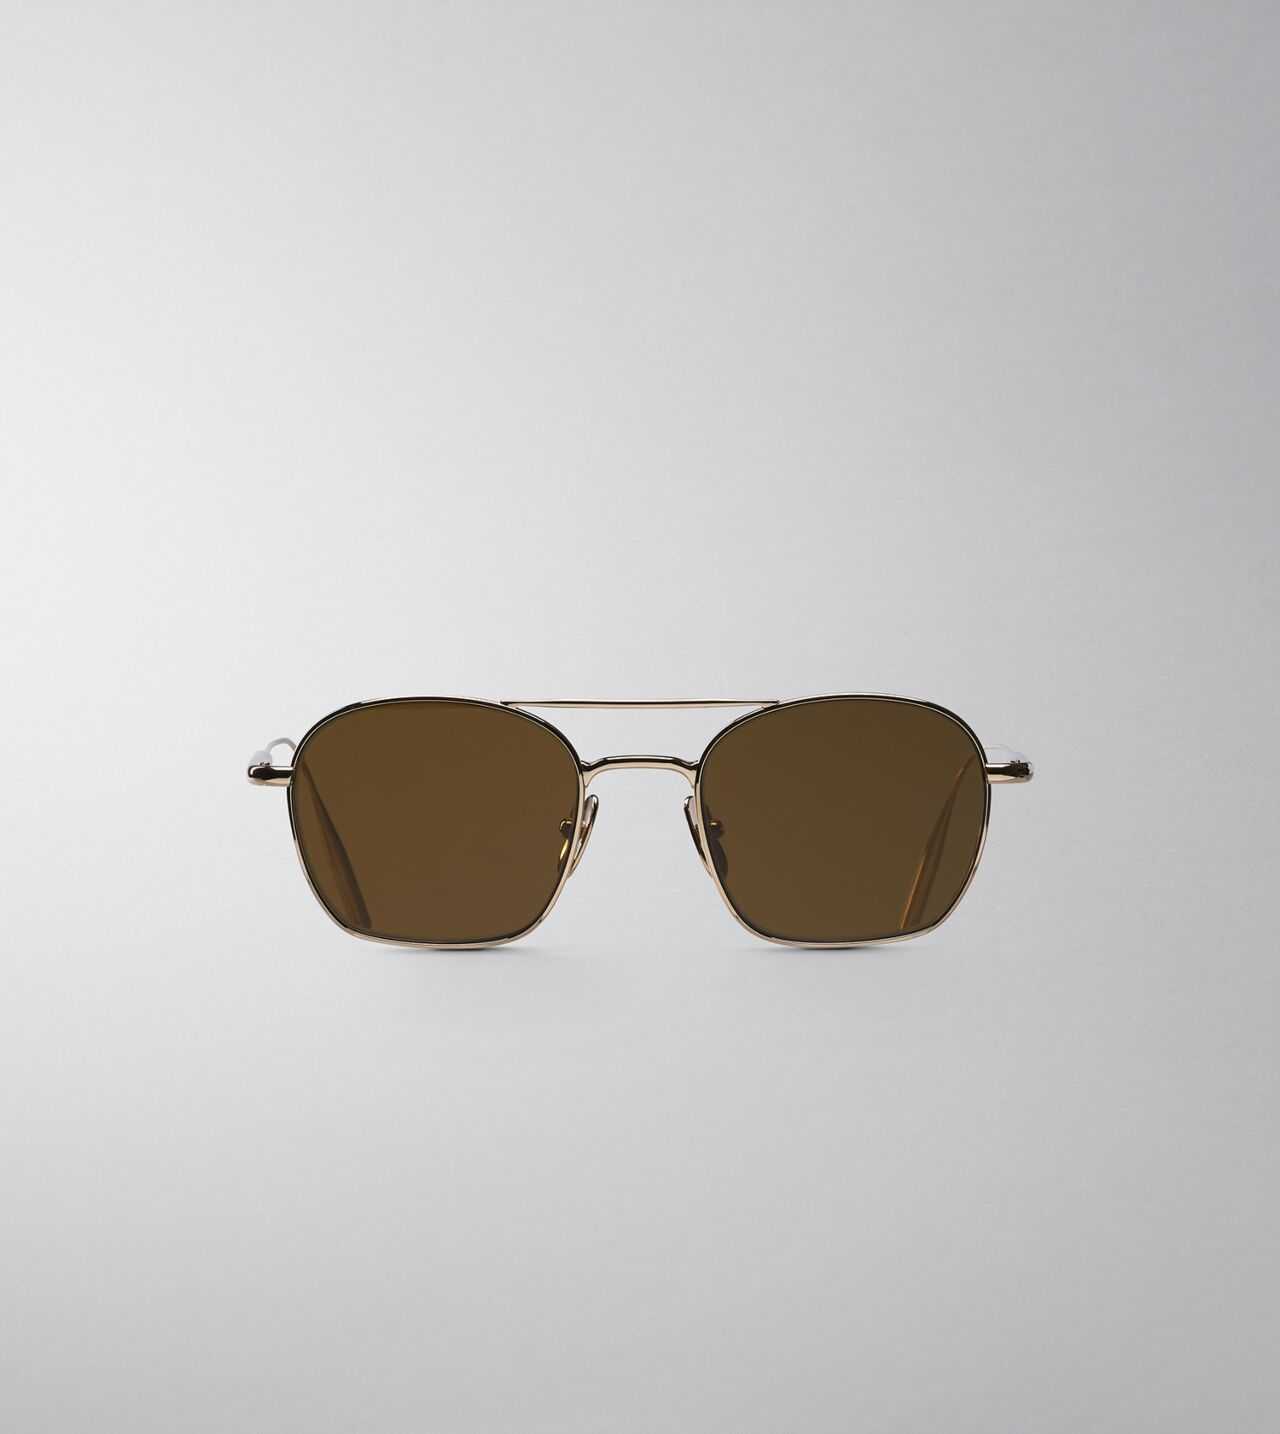 Picture of Byredo The Engineer in Gold brown